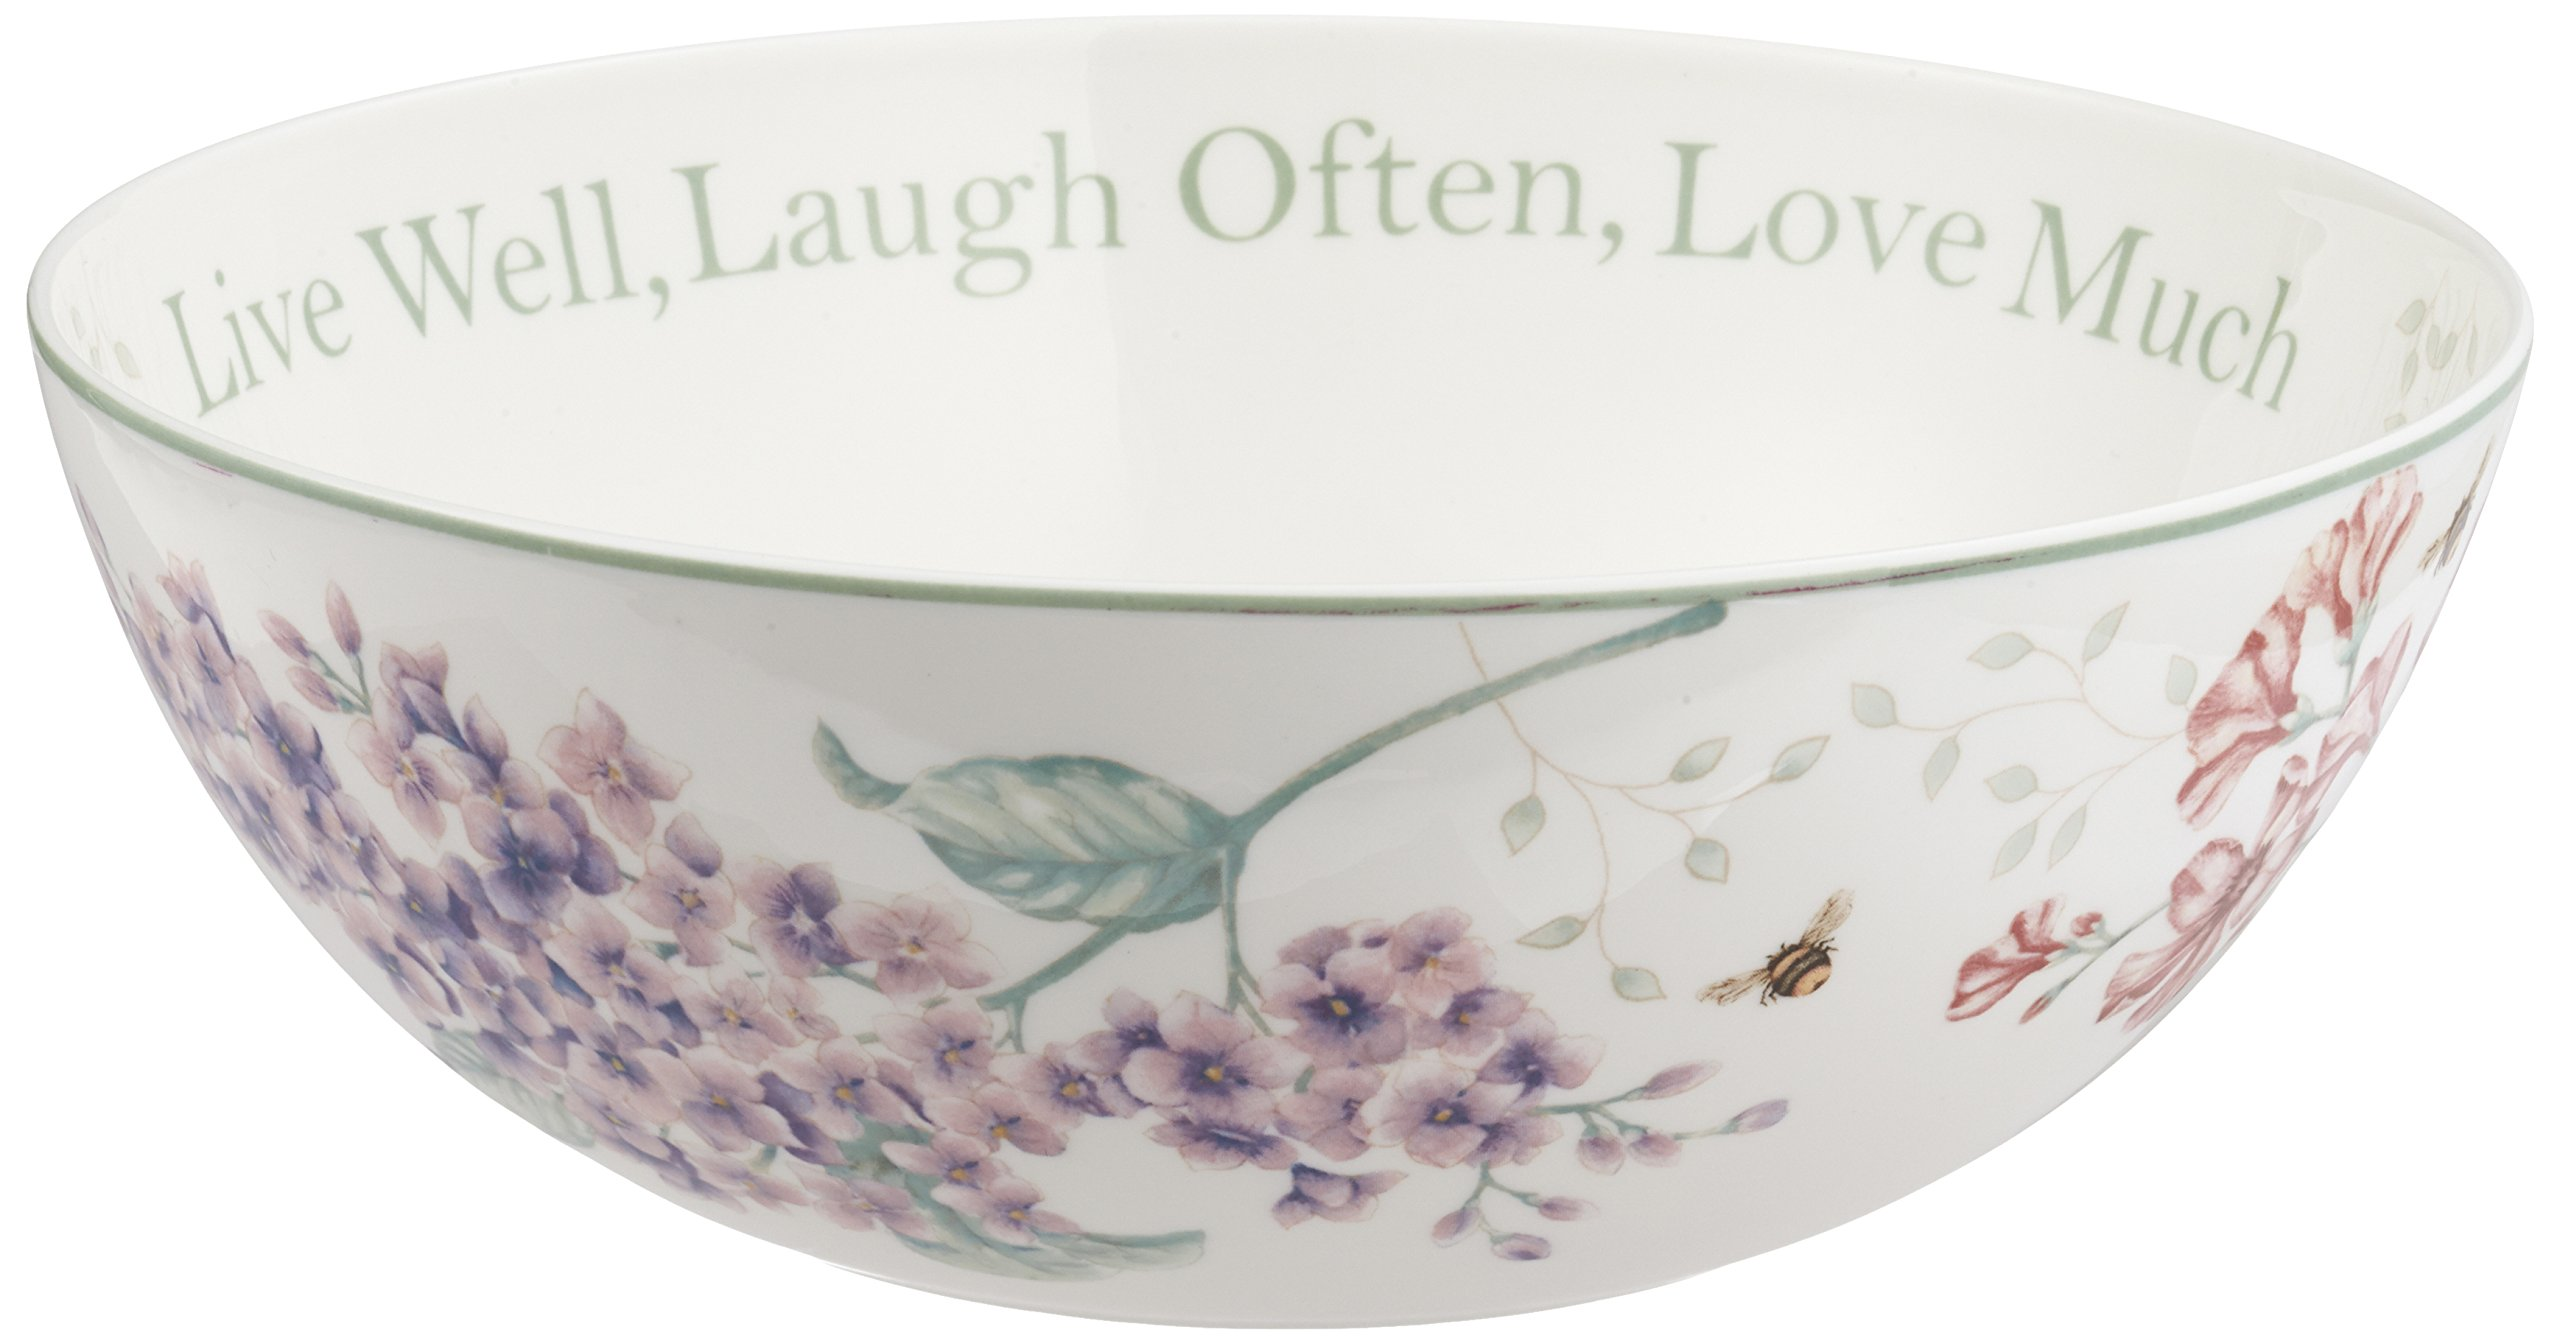 Lenox Butterfly Meadow ''Live Well, Laugh Often, Love Much'' Serving Bowl